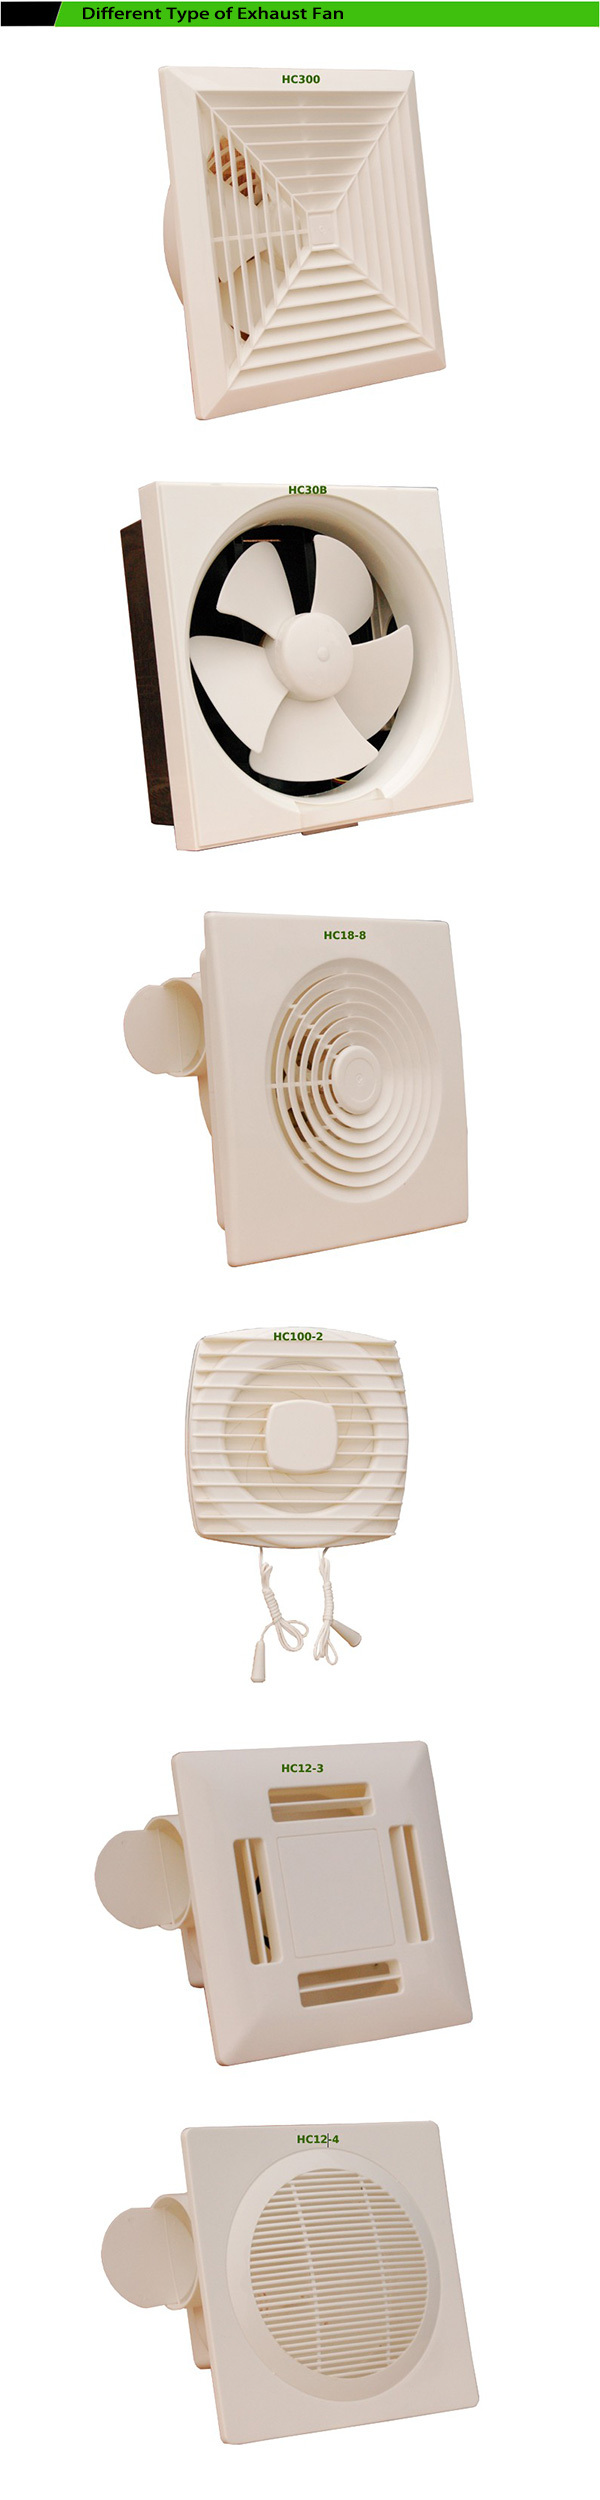 Factory Low Price Wall Roof Mounted Bathroom Kitchen Small Window Ceiling  Exhaust Fans - Buy Roof Mounted Exhaust Fan,Bathroom Window Exhaust ...